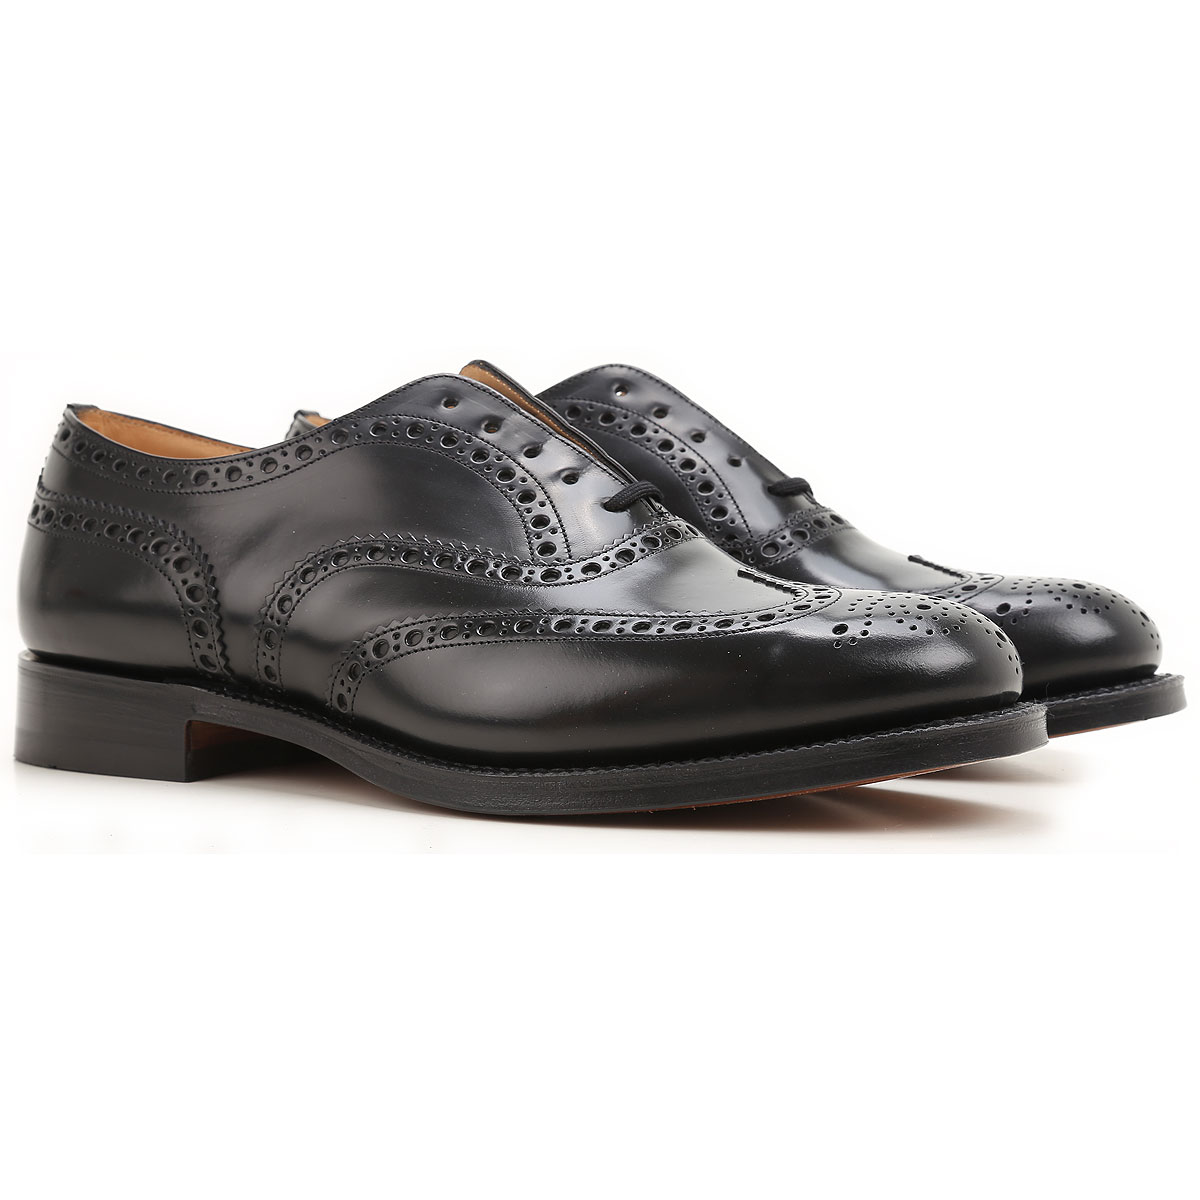 Image of Church's Brogue Shoes, Black, Leather, 2017, 10 10.5 7.5 8 8.5